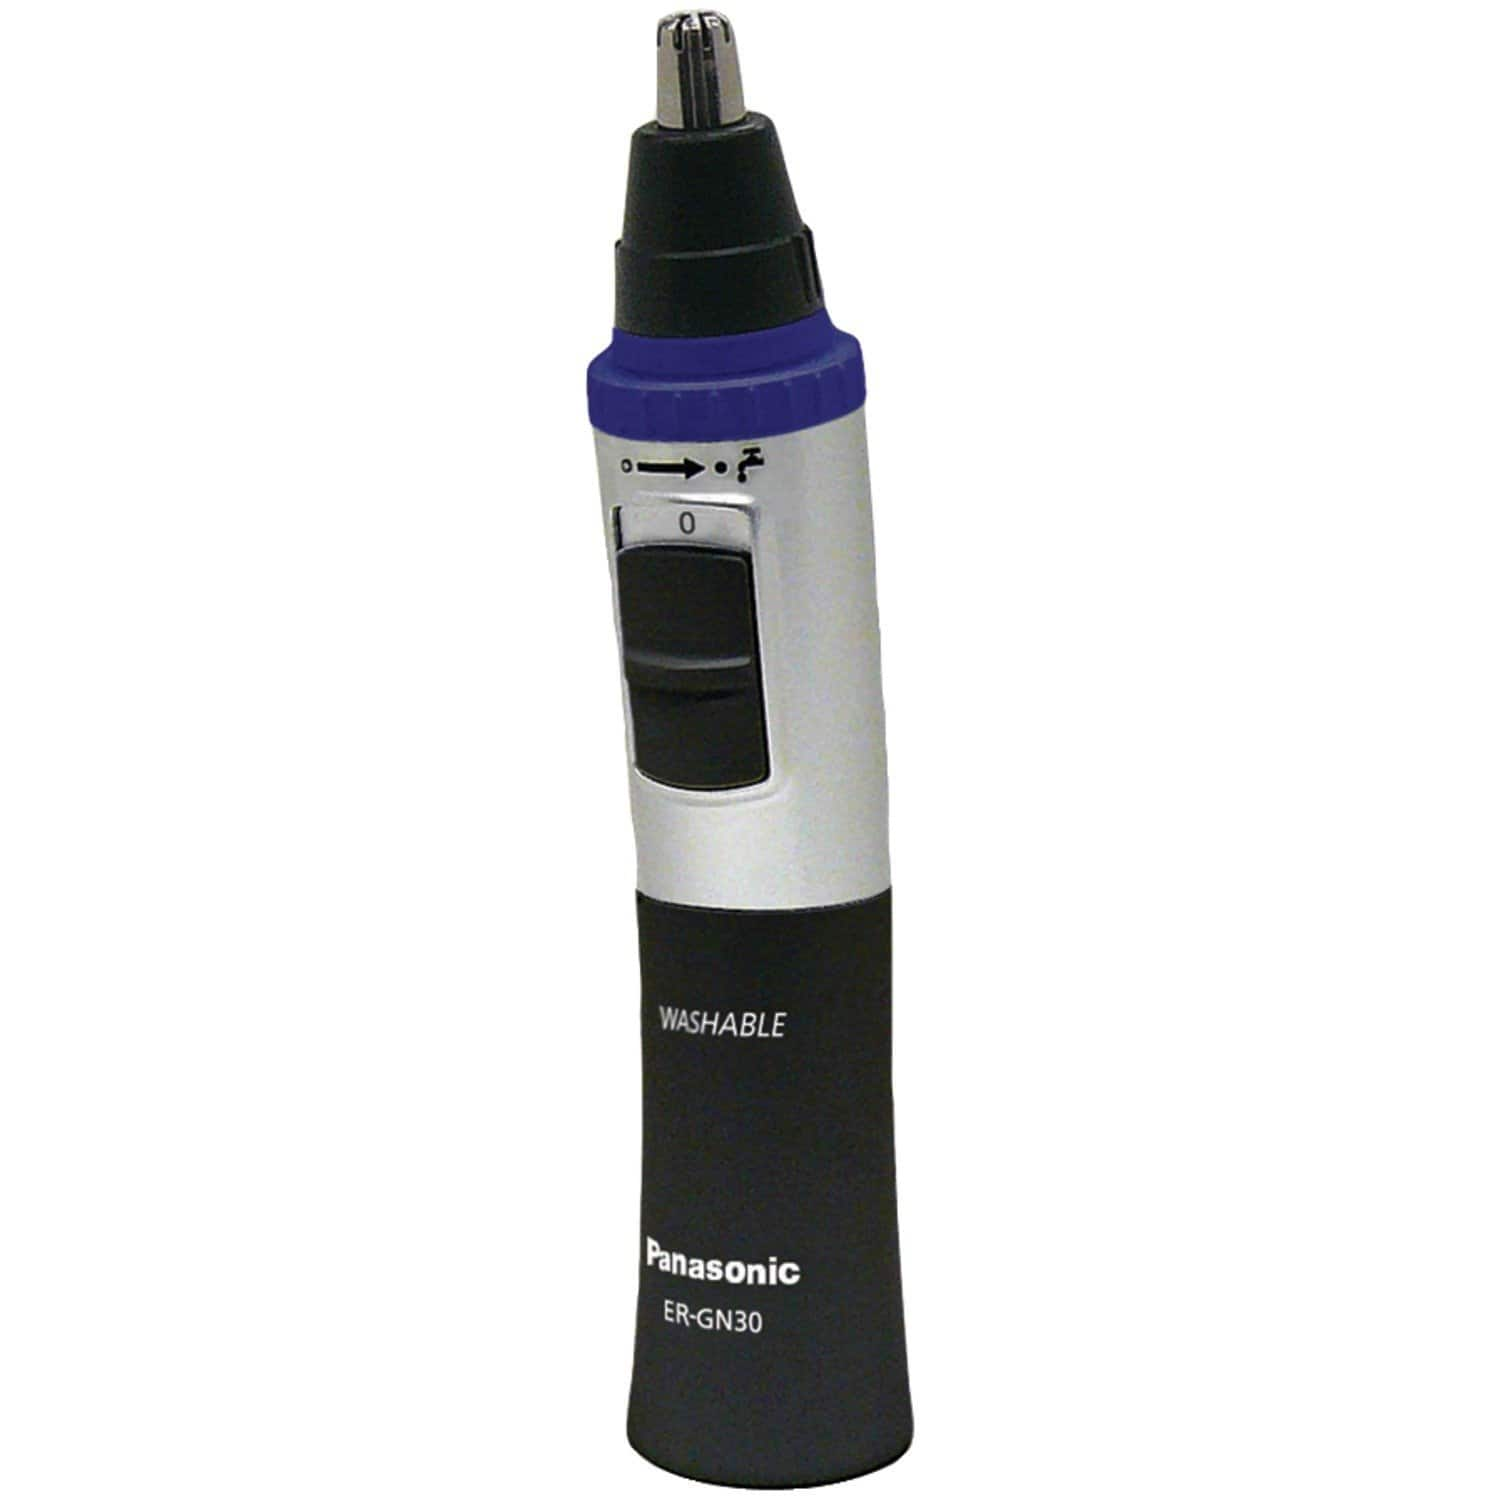 Panasonic Vortex Wet/Dry Facial, Nose, & Ear Hair Trimmer $7.99 w/ Best Buy EDU Coupon + Free Store Pickup